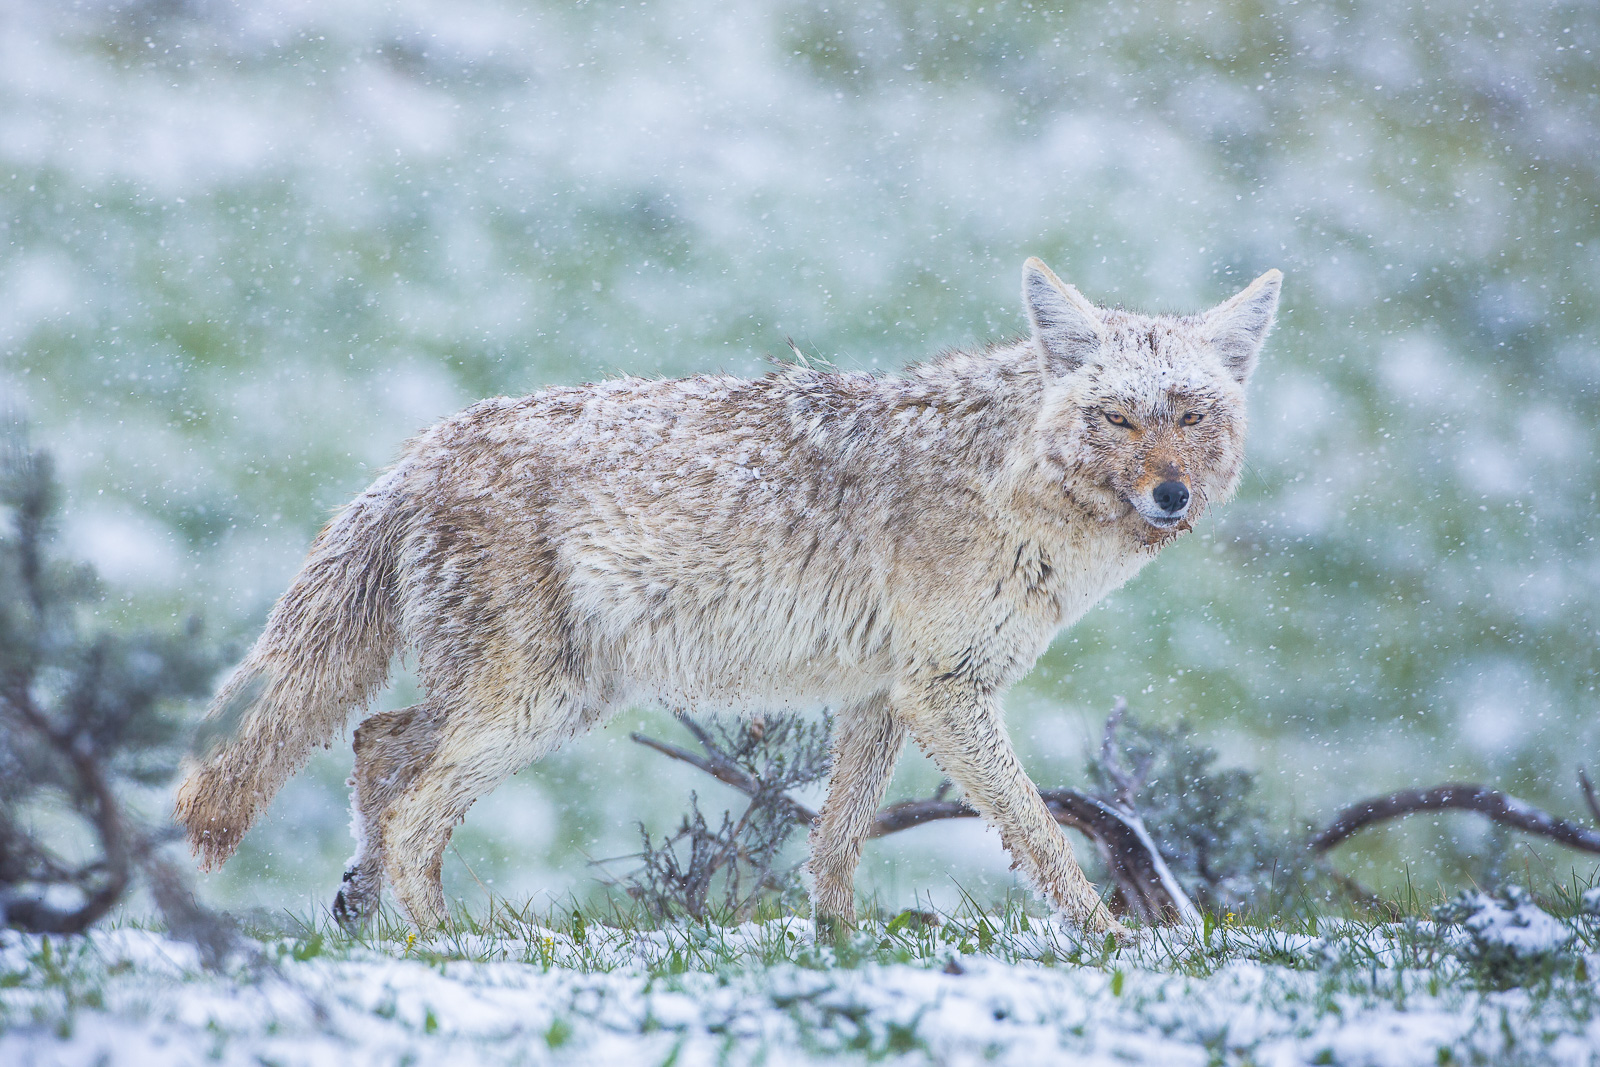 Up to No Good,Yellowstone National Park,spring,snow,valley,snow,Spring,Srorm, photo